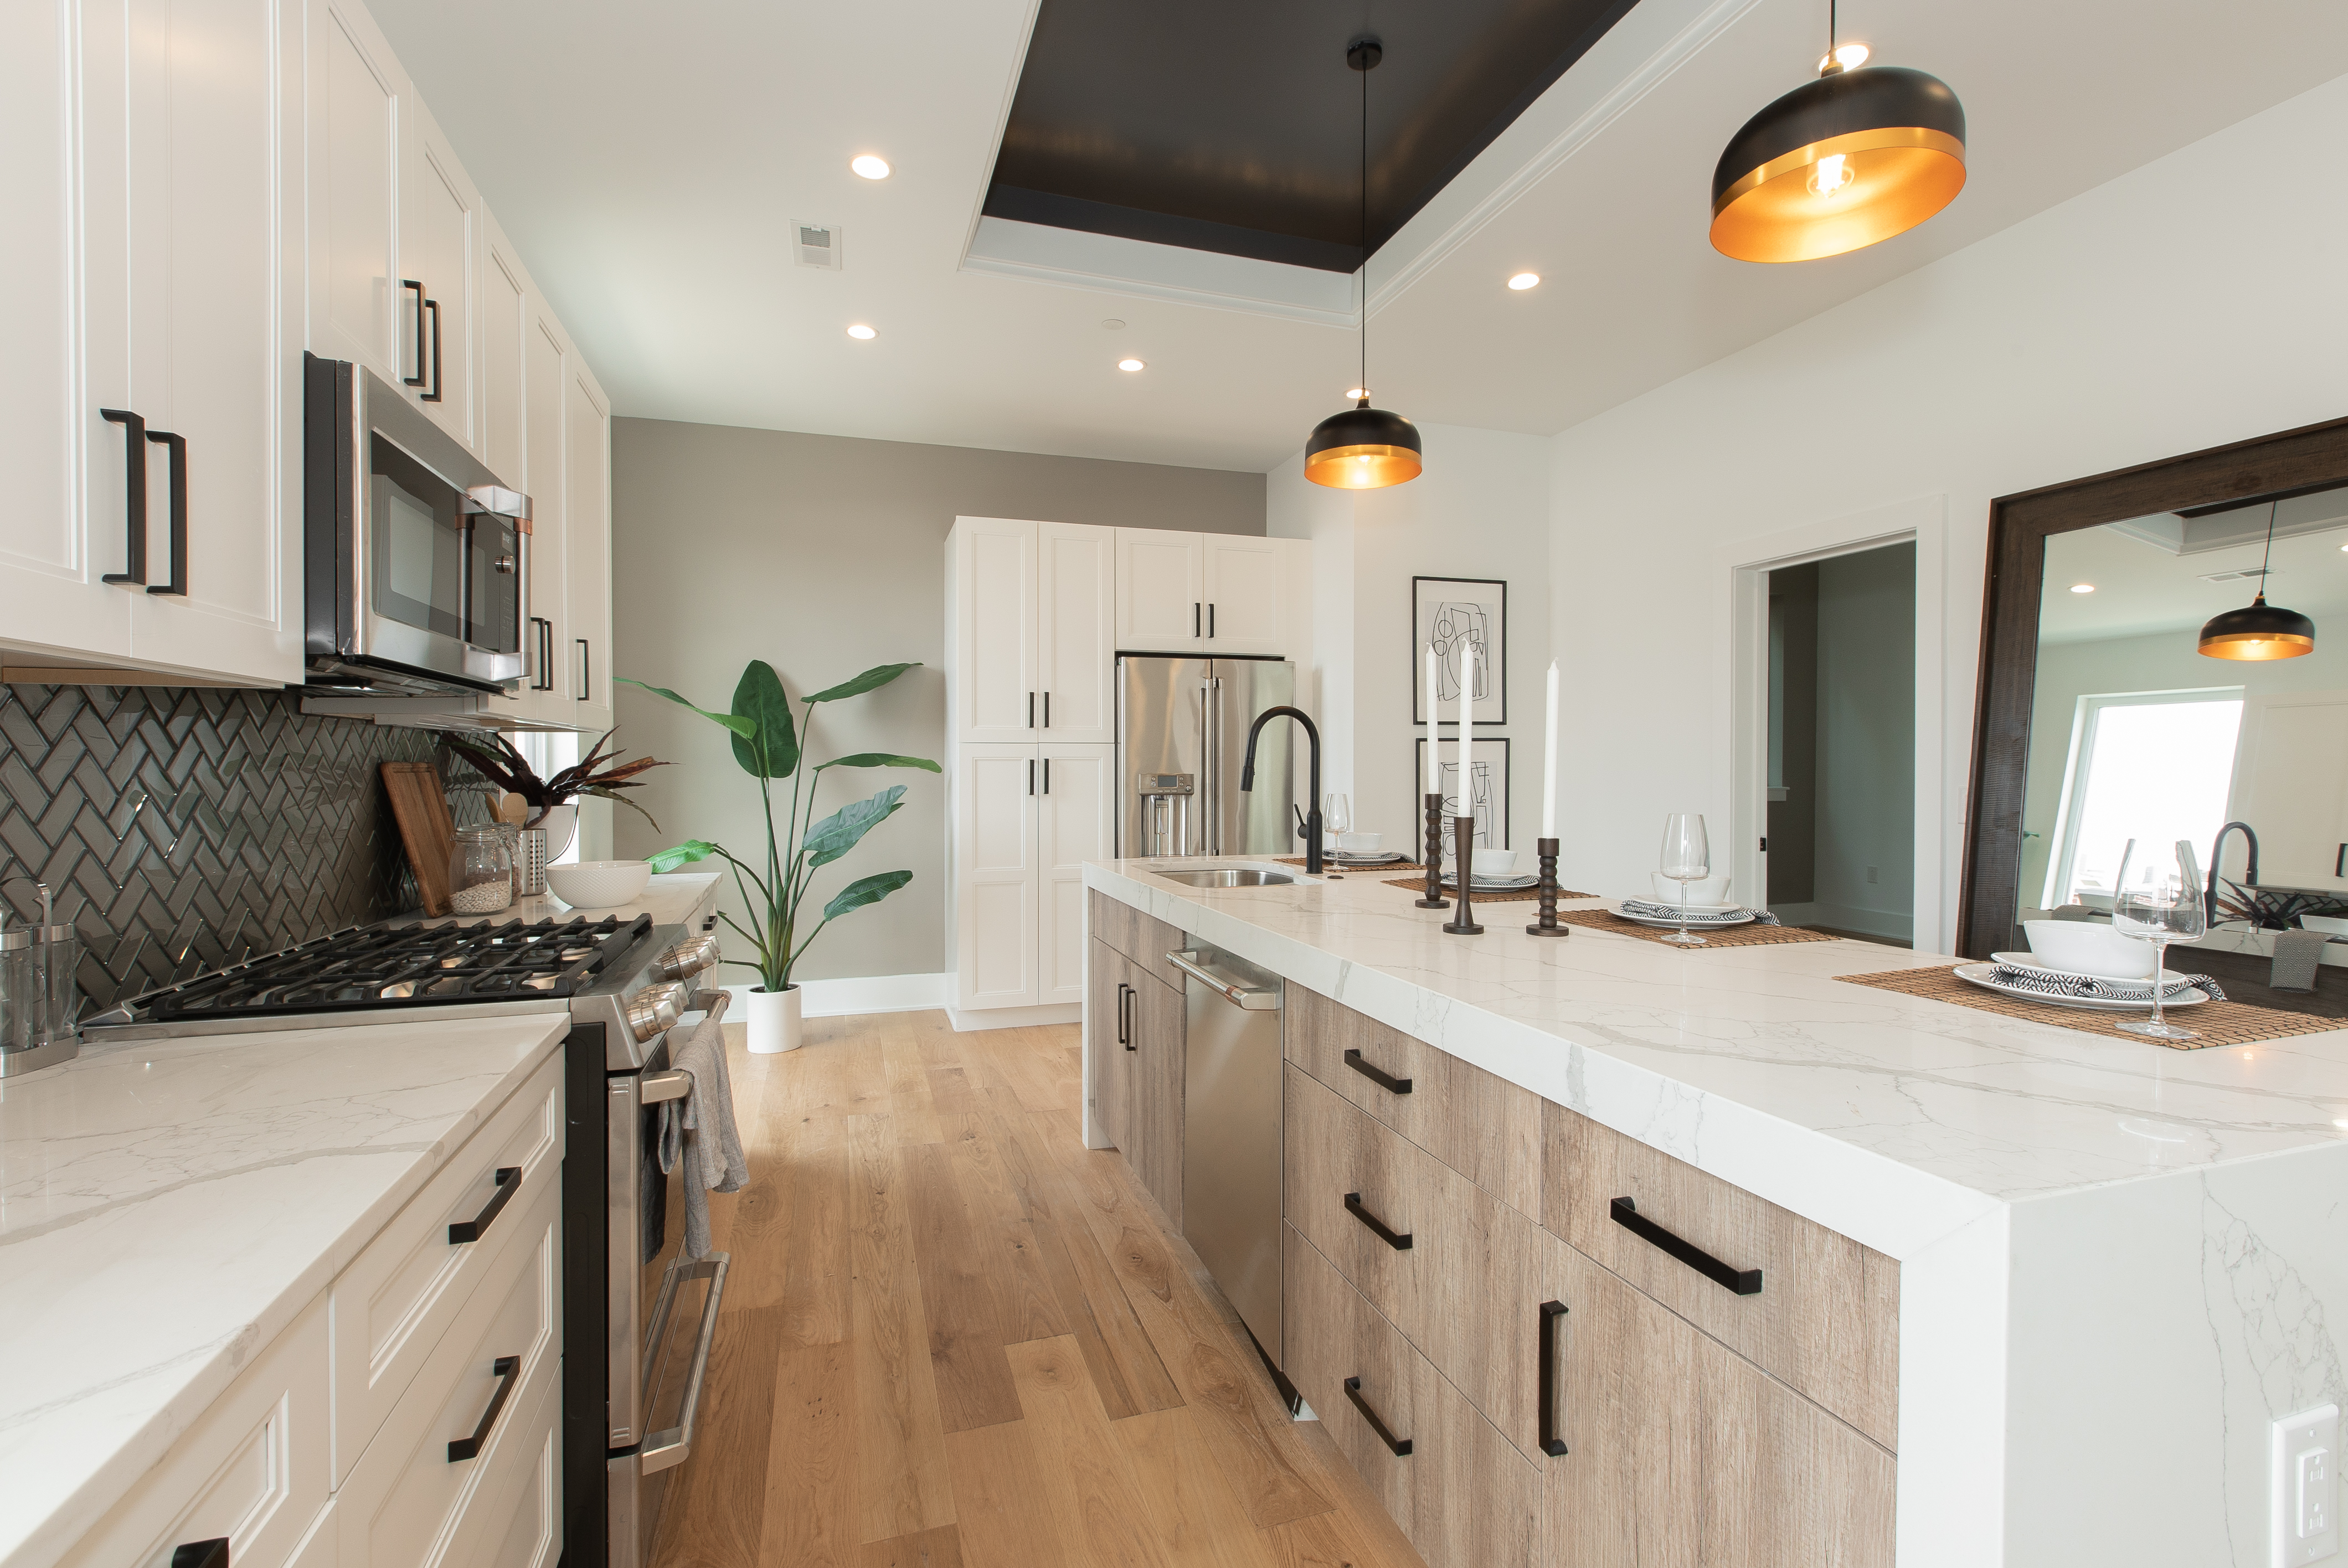 New Home Prospects: Convincing Buyers to Buy Newly Constructed Homes